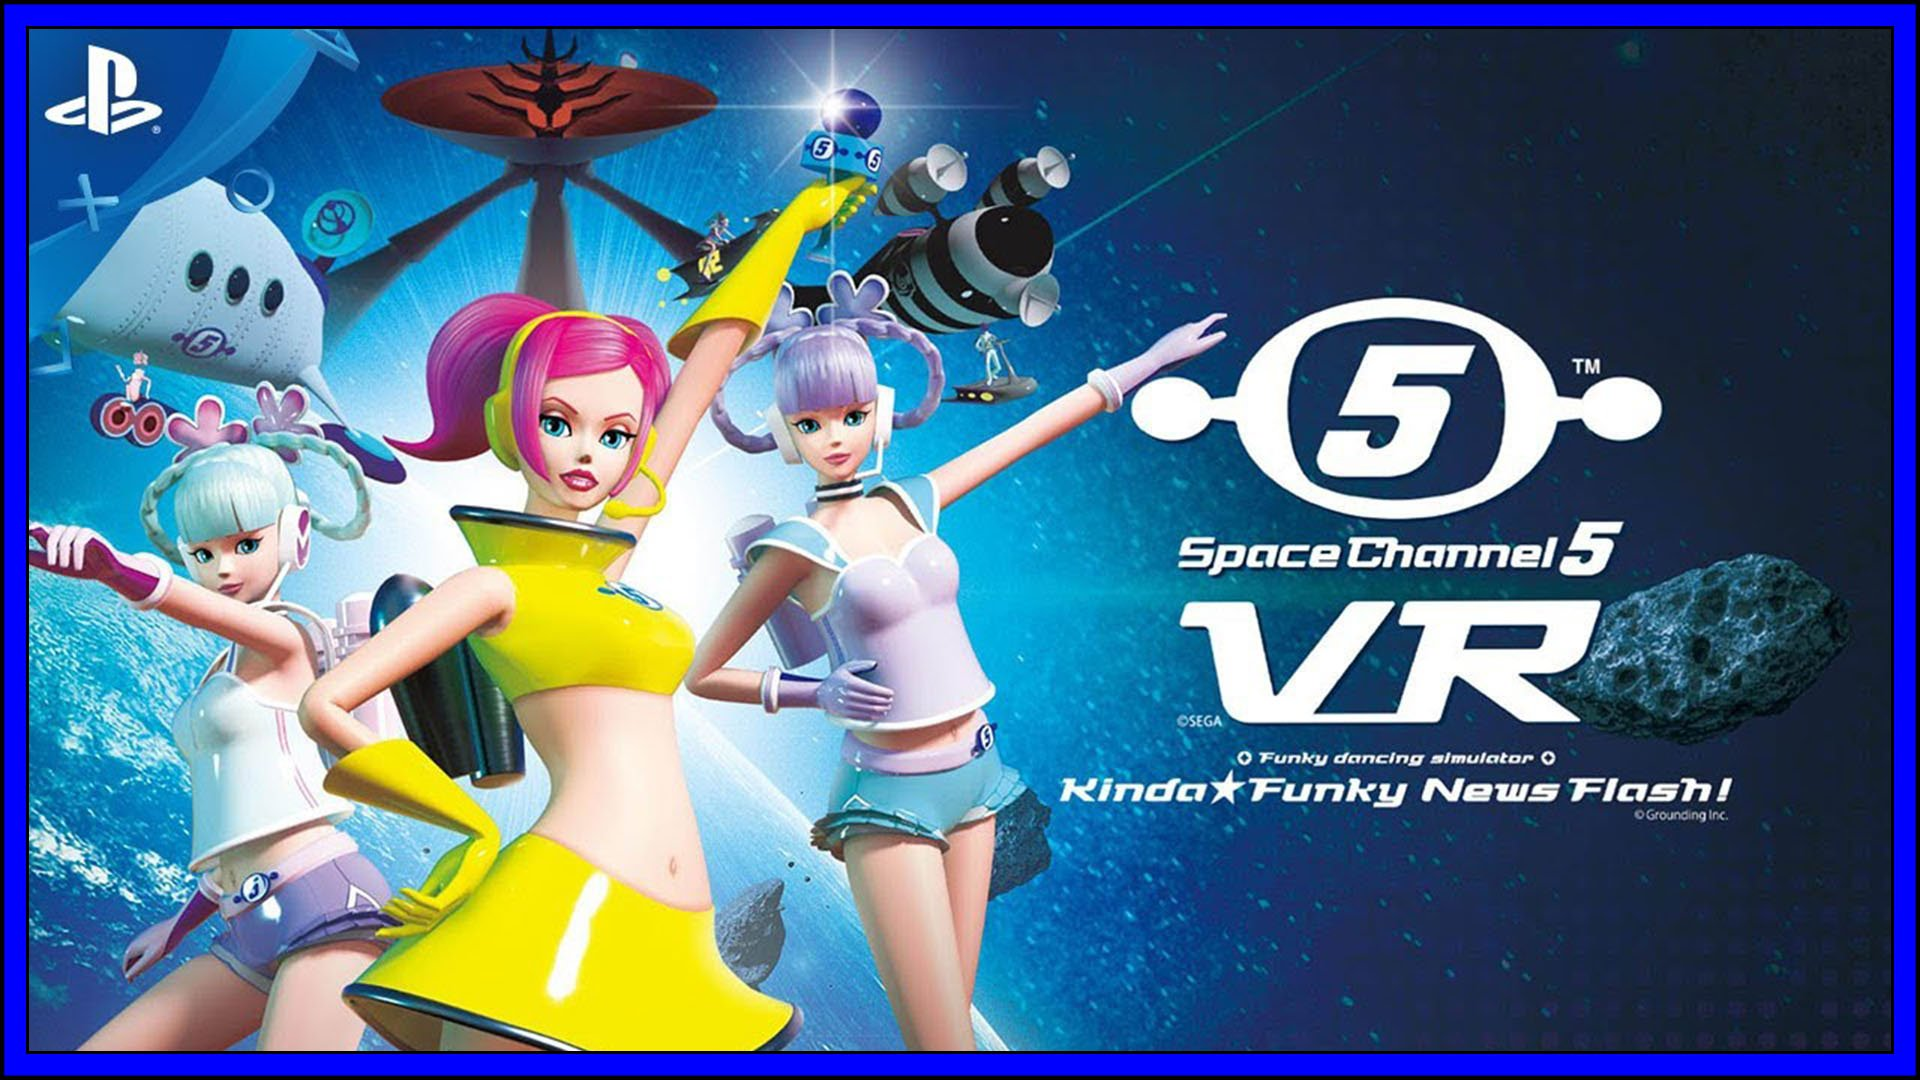 Space Channel 5 VR Fi3